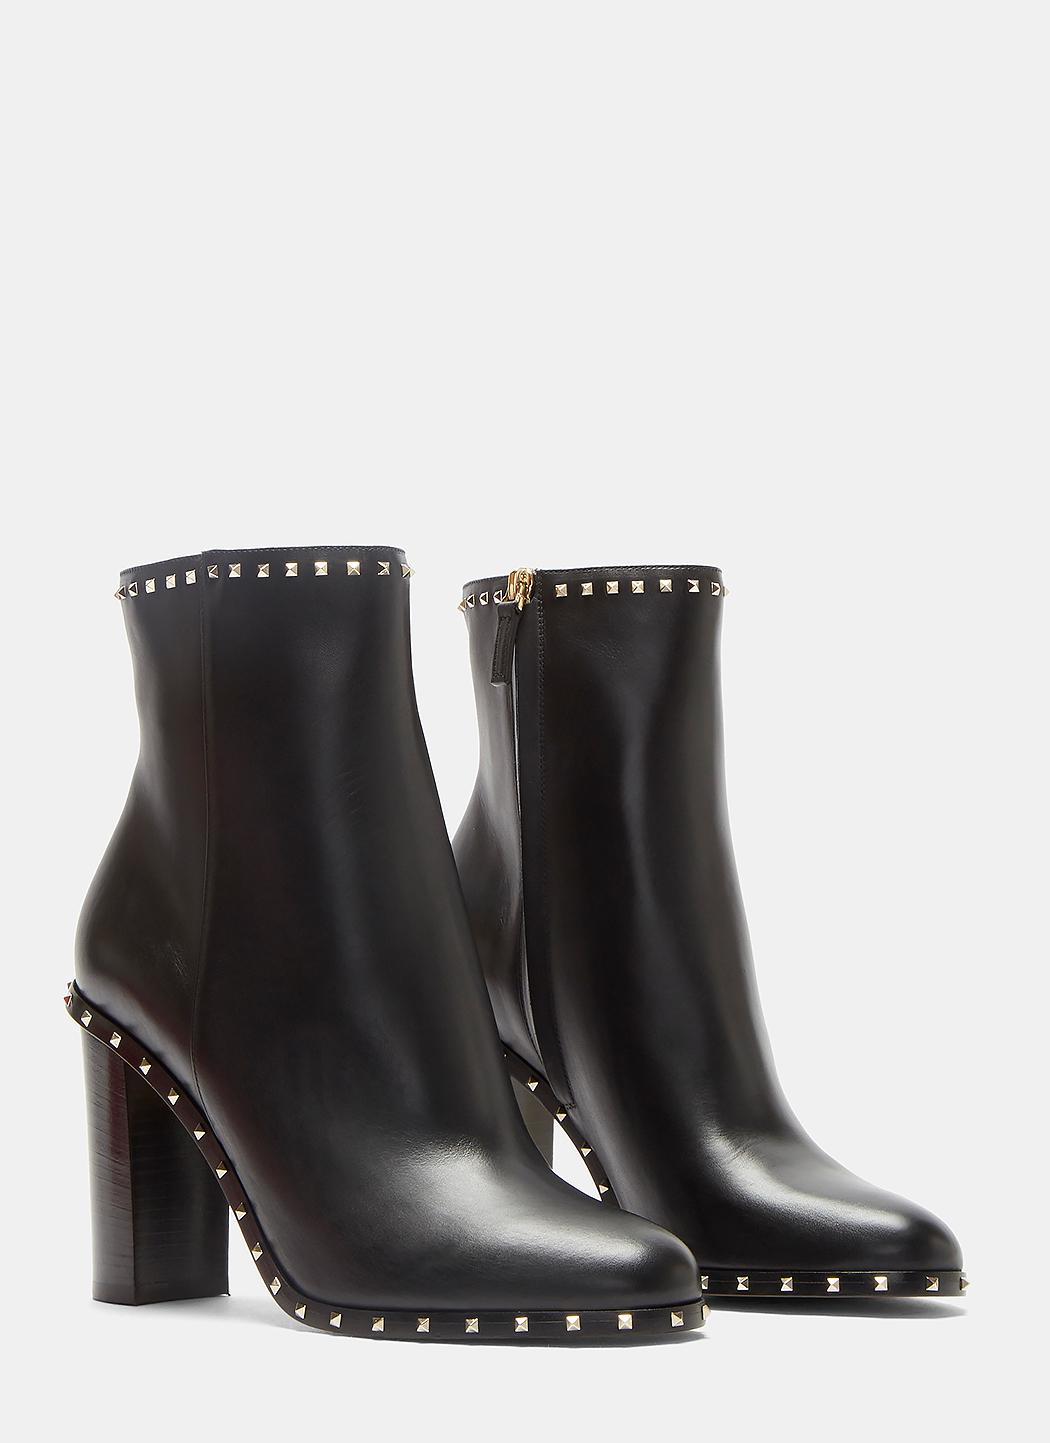 c9a2fa07f Valentino Pyramid-studded Heeled Ankle Boots In Black in Black - Lyst